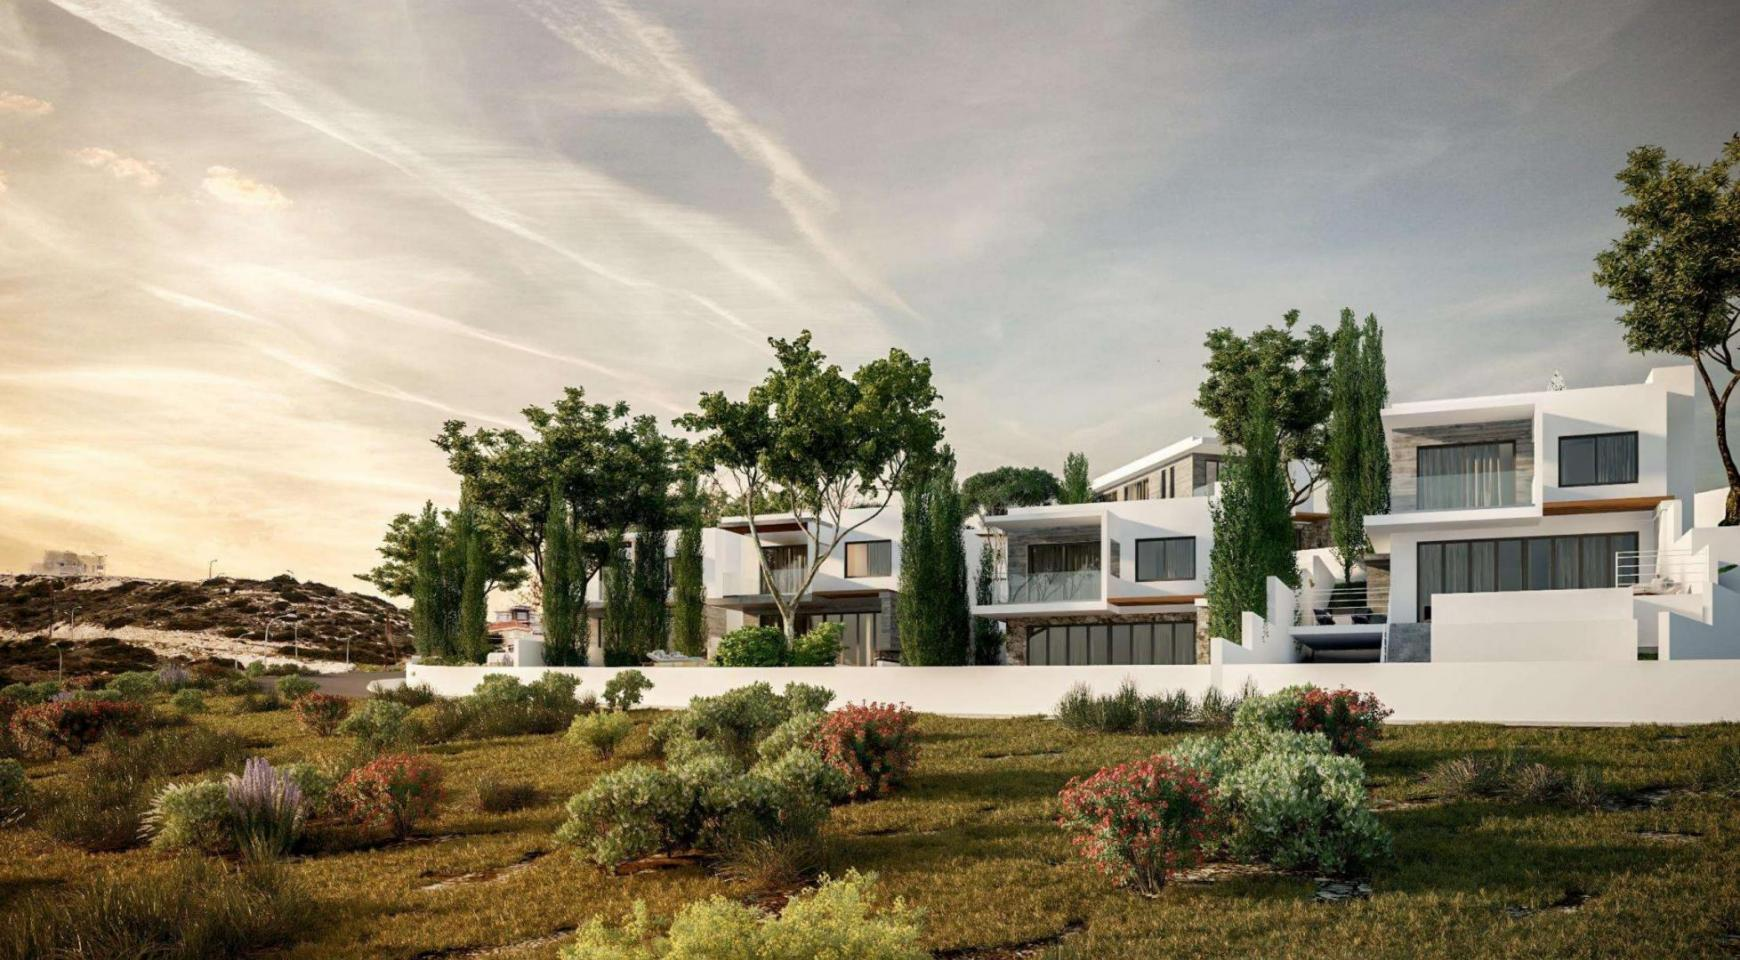 3 Bedroom Villa in a New Project in Agios Tychonas - 8